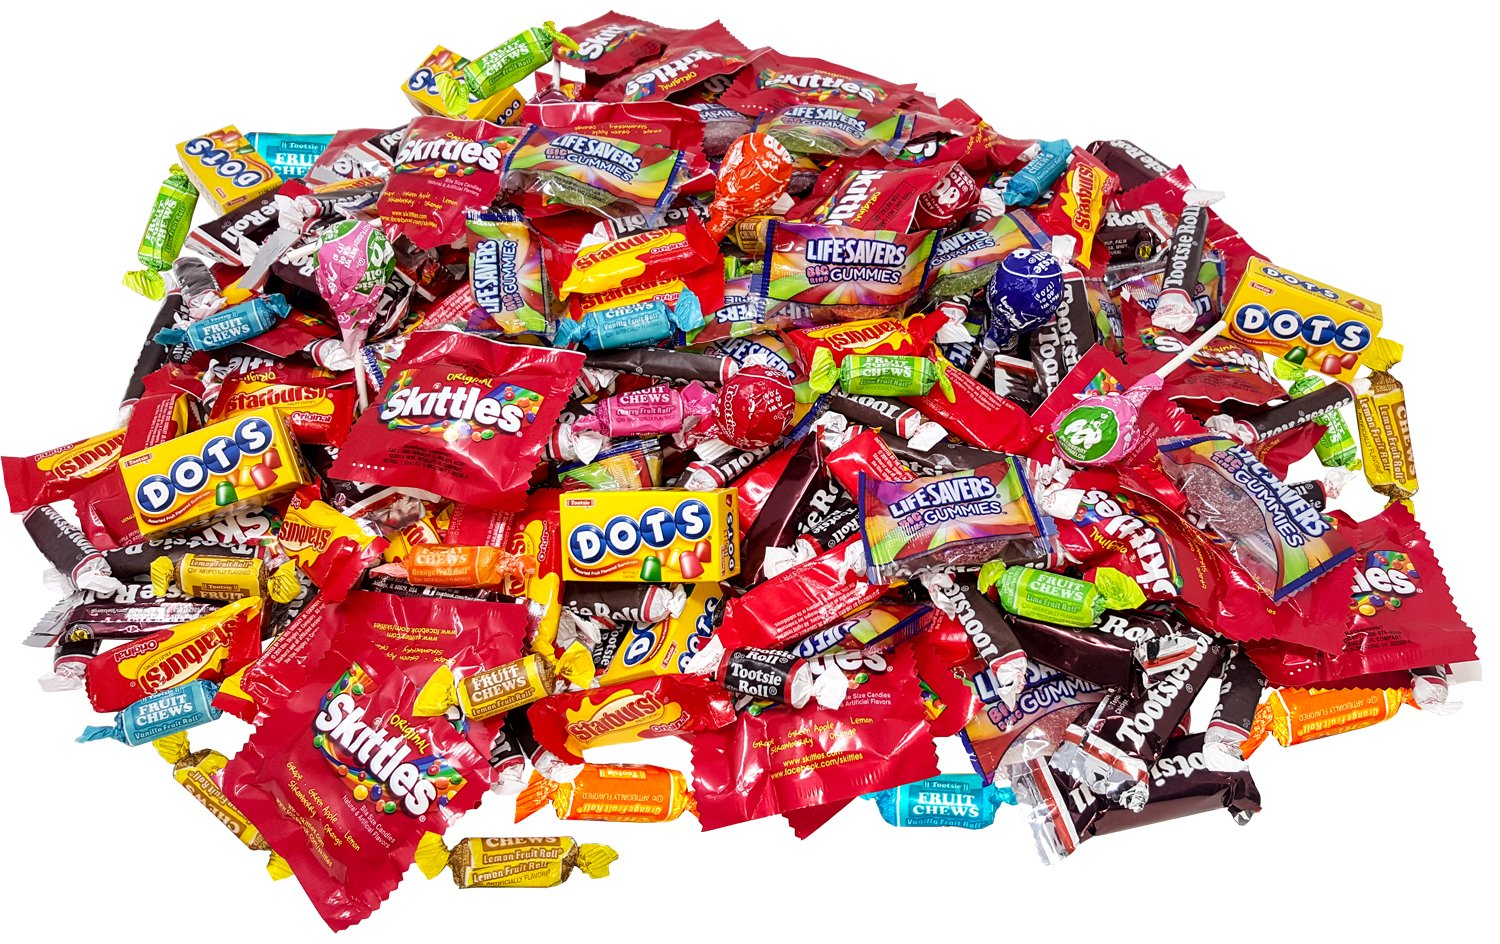 Assorted American Candy Classics Over 13 Favorite Flavors 11 Lb Variety Bulk Value Pack Skittles Tootsies Starburst Lifesavers Gummy Rings And More (176 oz) by Assortit